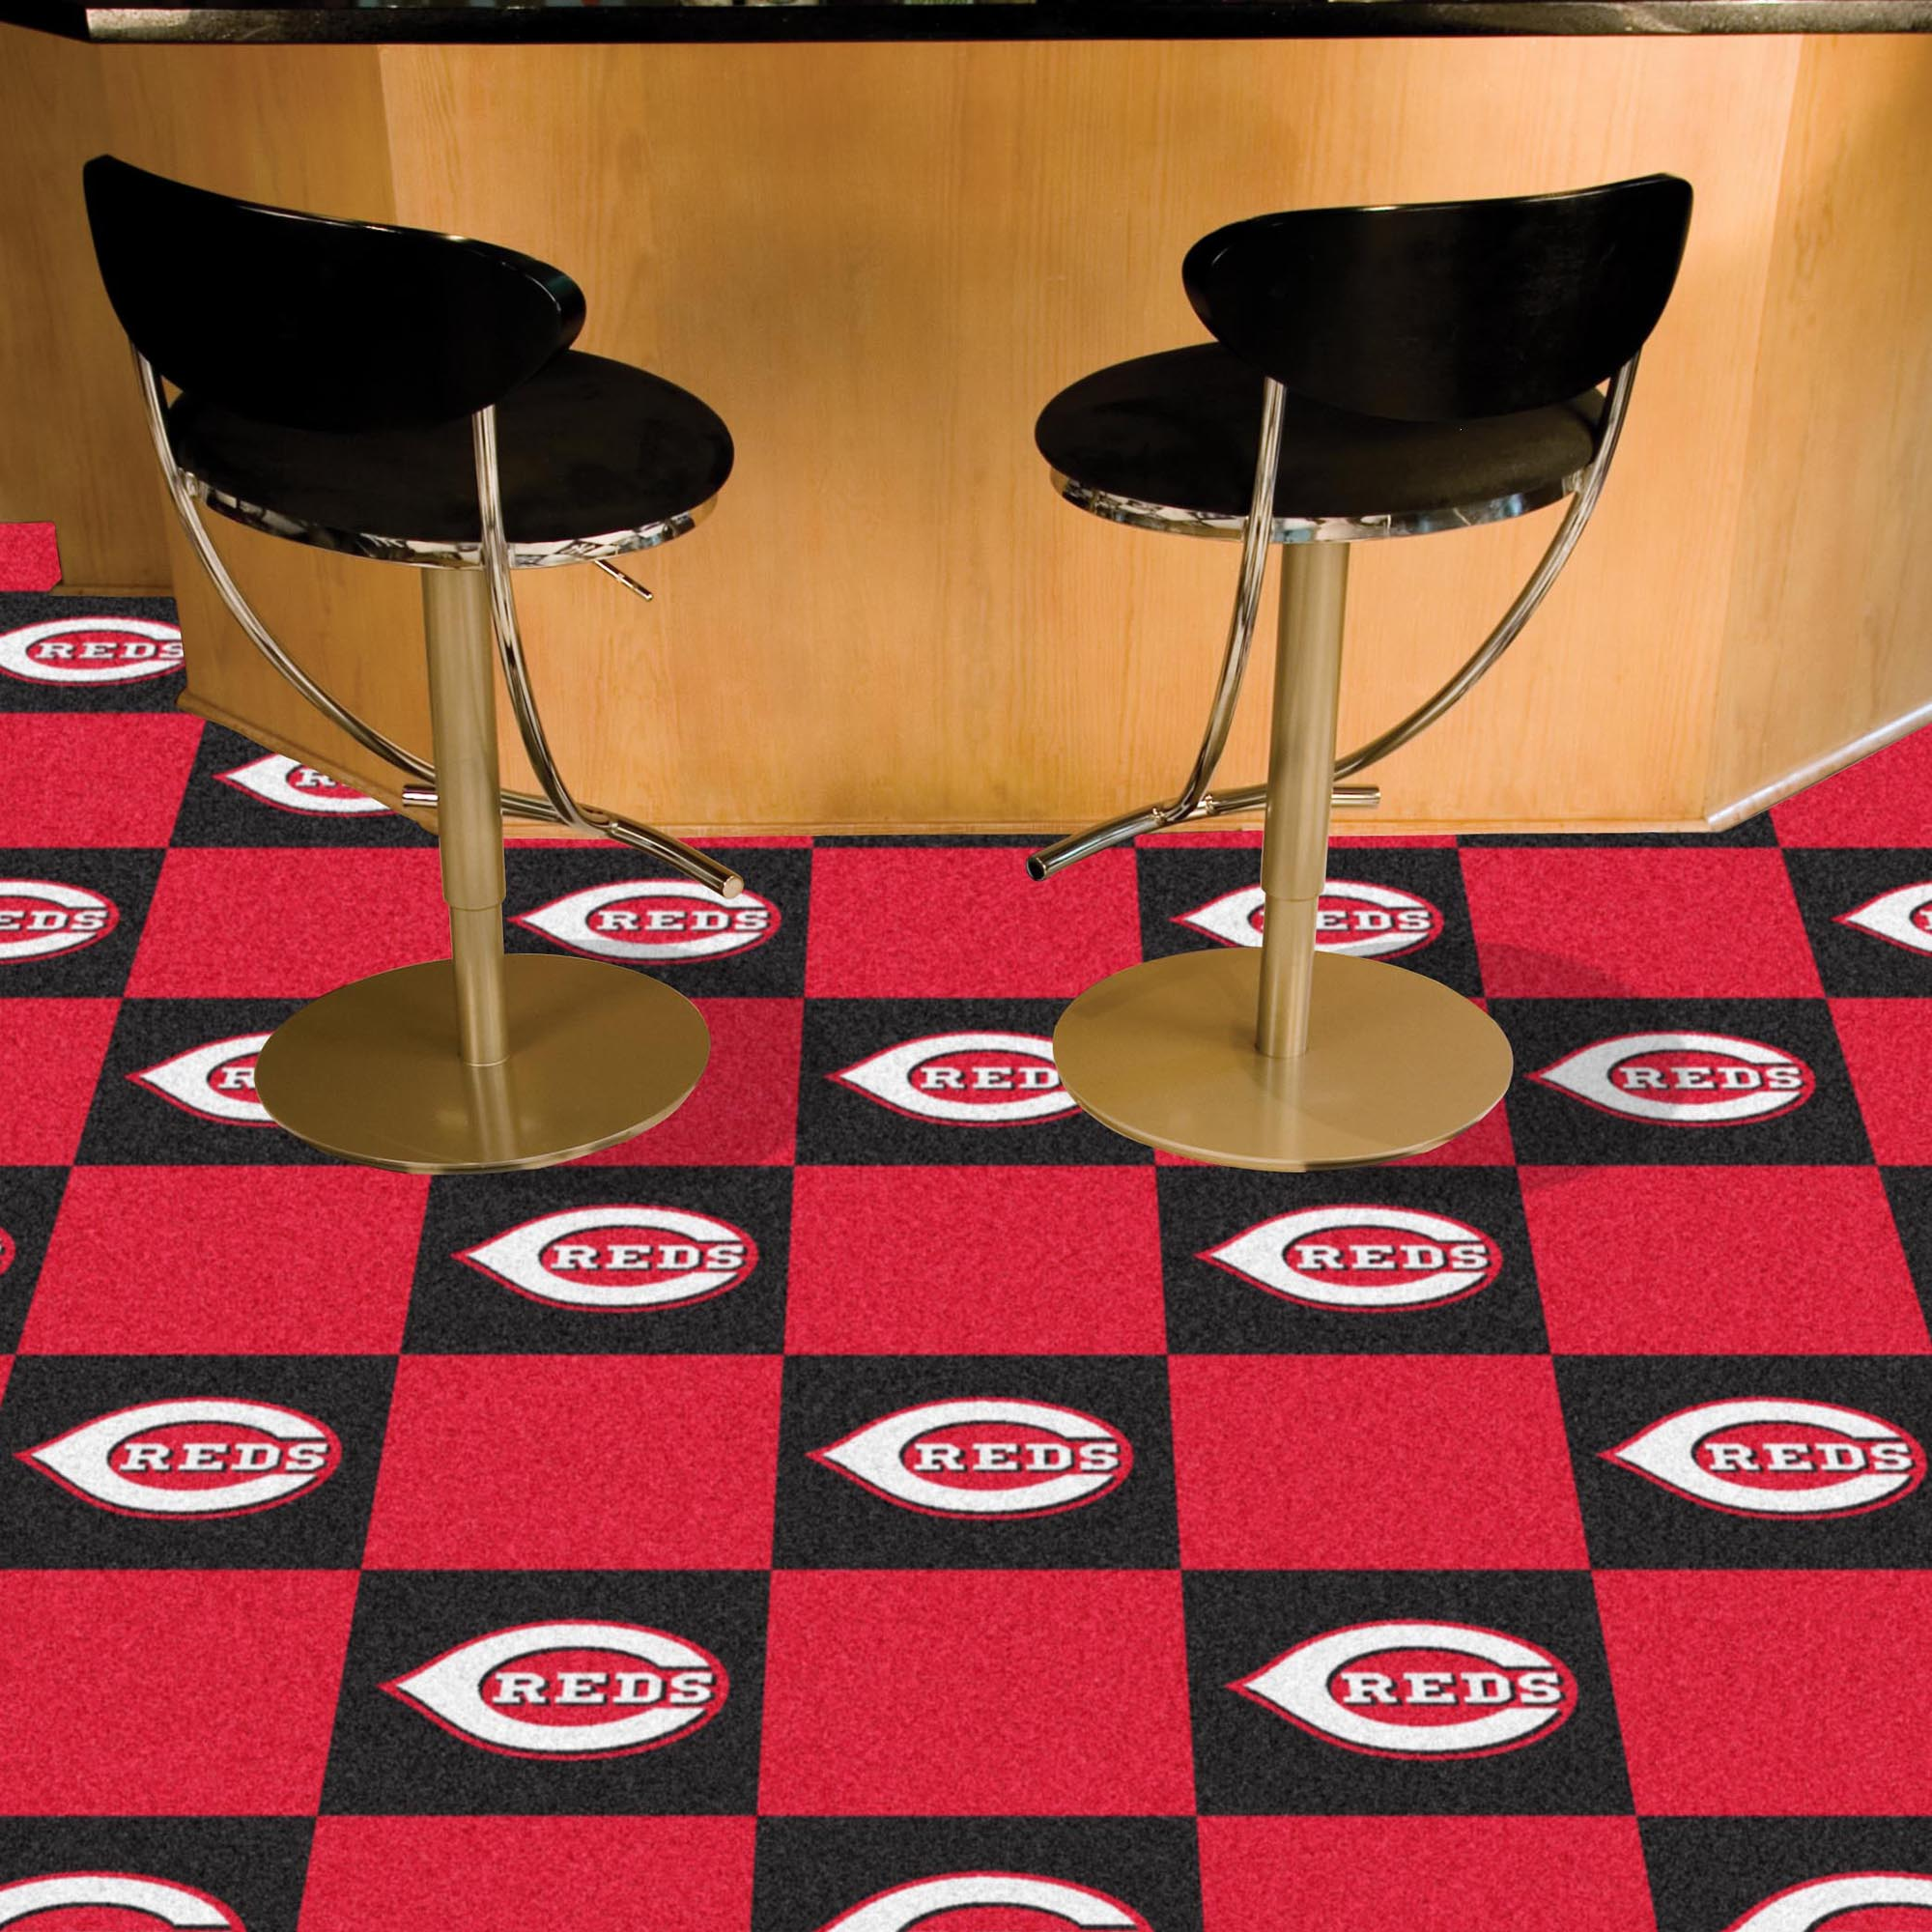 Cincinnati Reds Carpet Tiles 18x18 in.